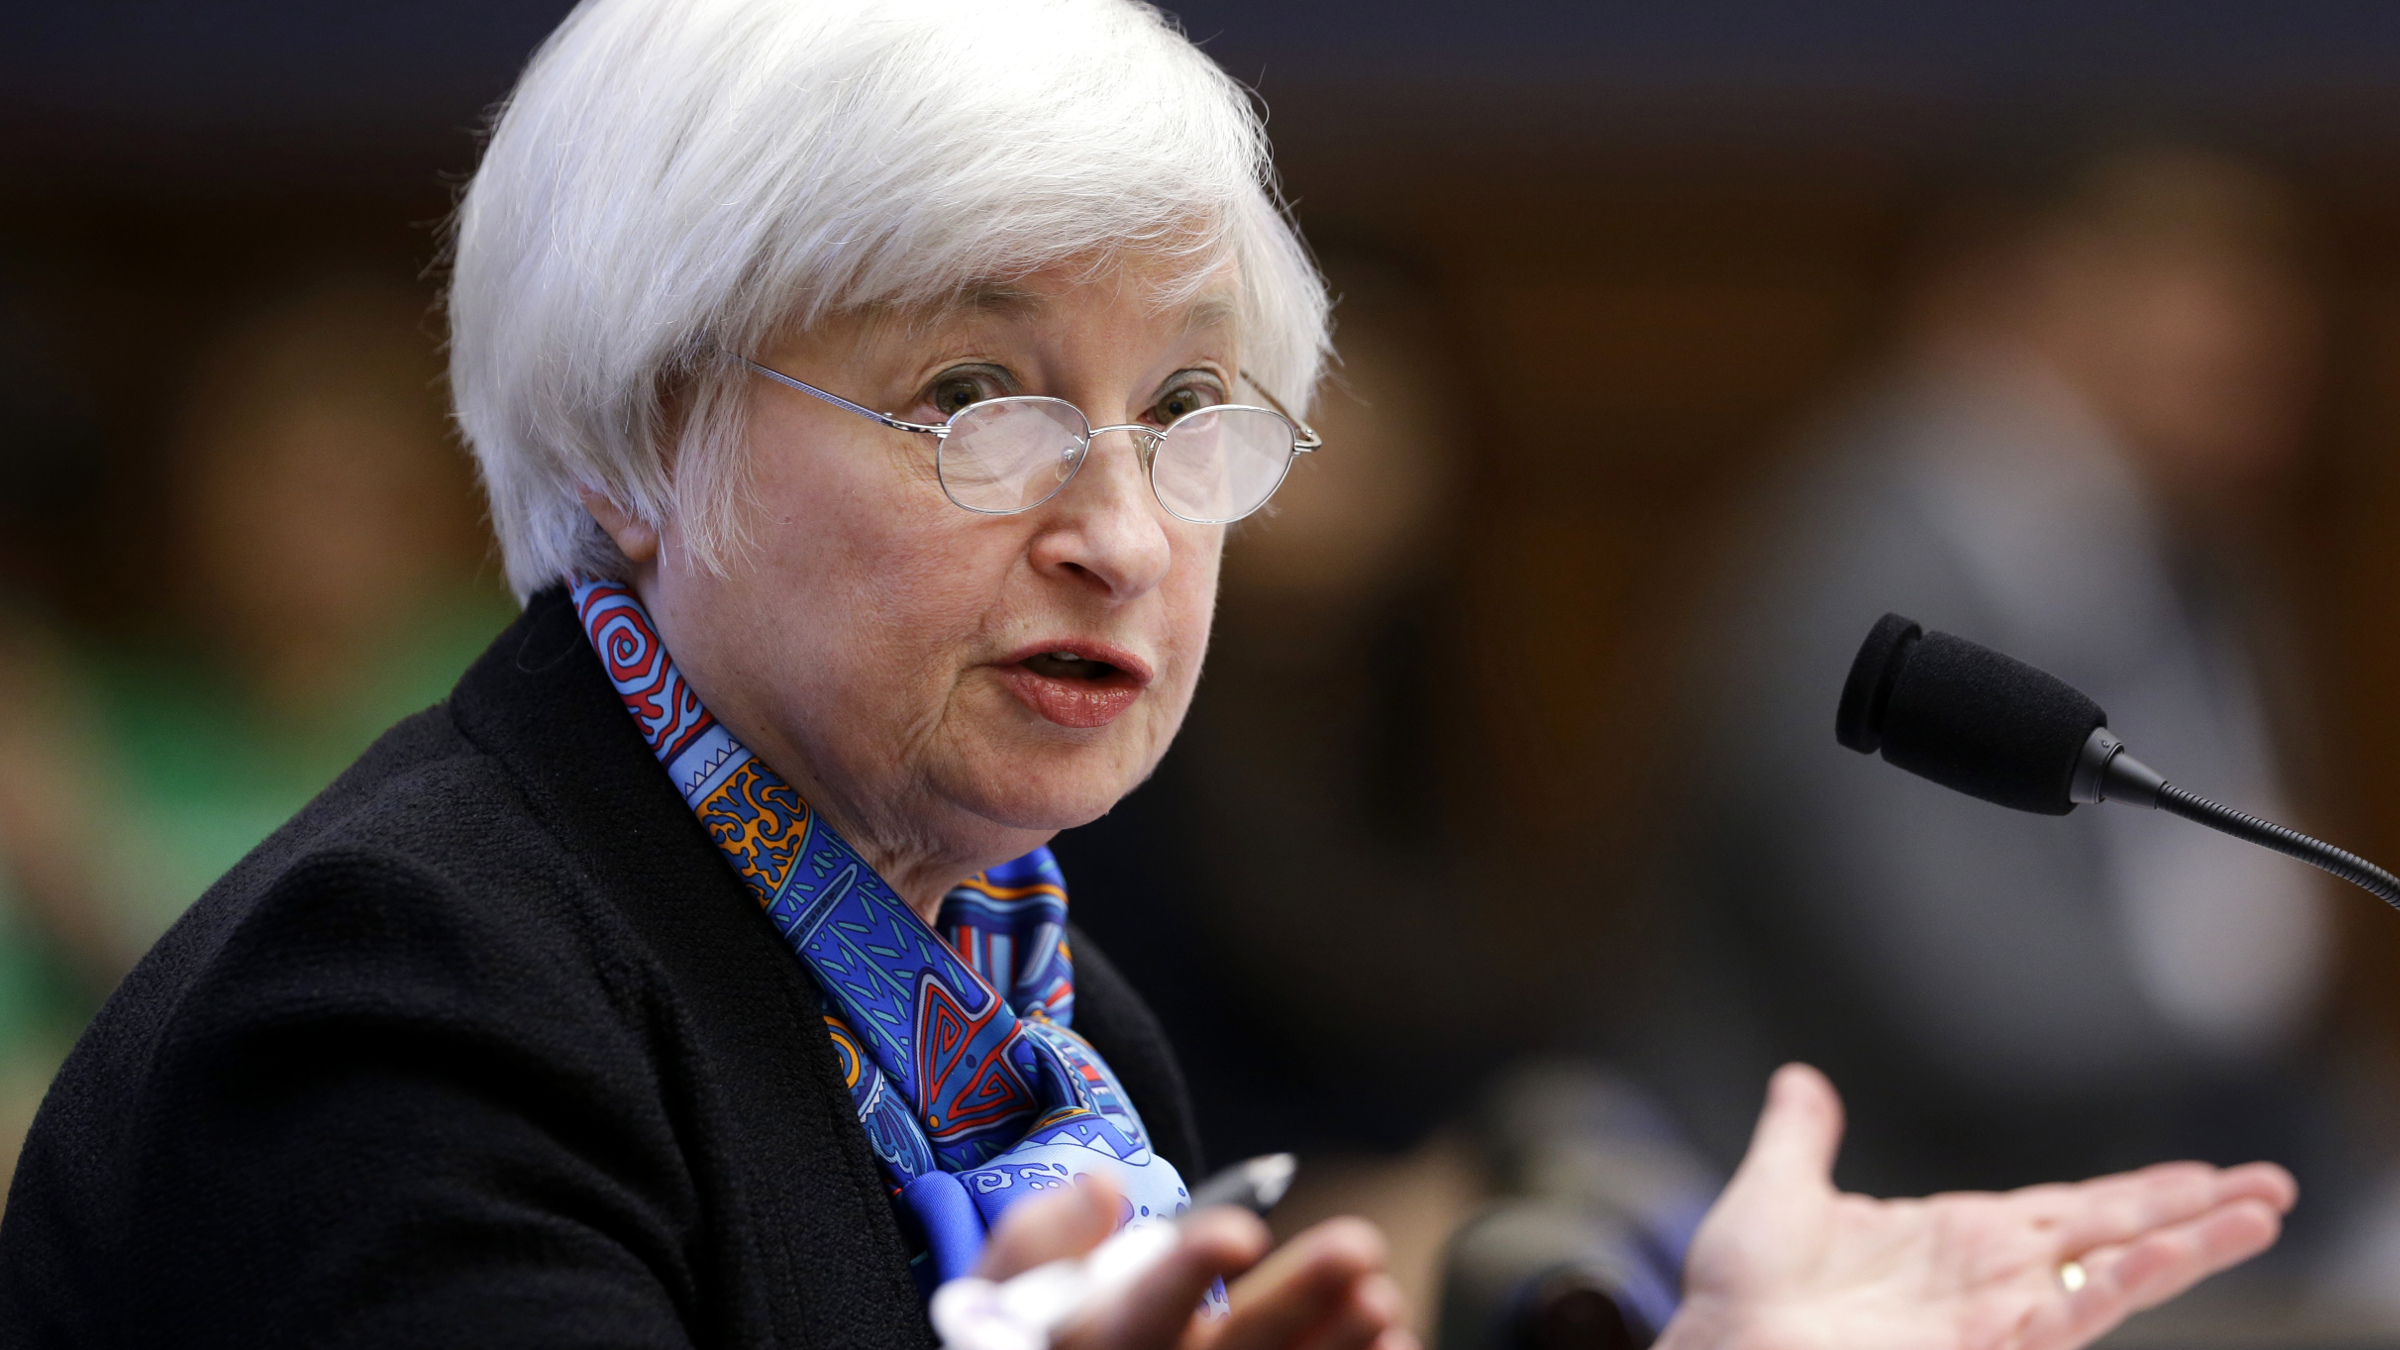 Federal Reserve Chair Janet Yellin testifies on U.S. monetary policy before the House Financial Services Committee on Capitol Hill in Washington, Wednesday, June 22, 2016.